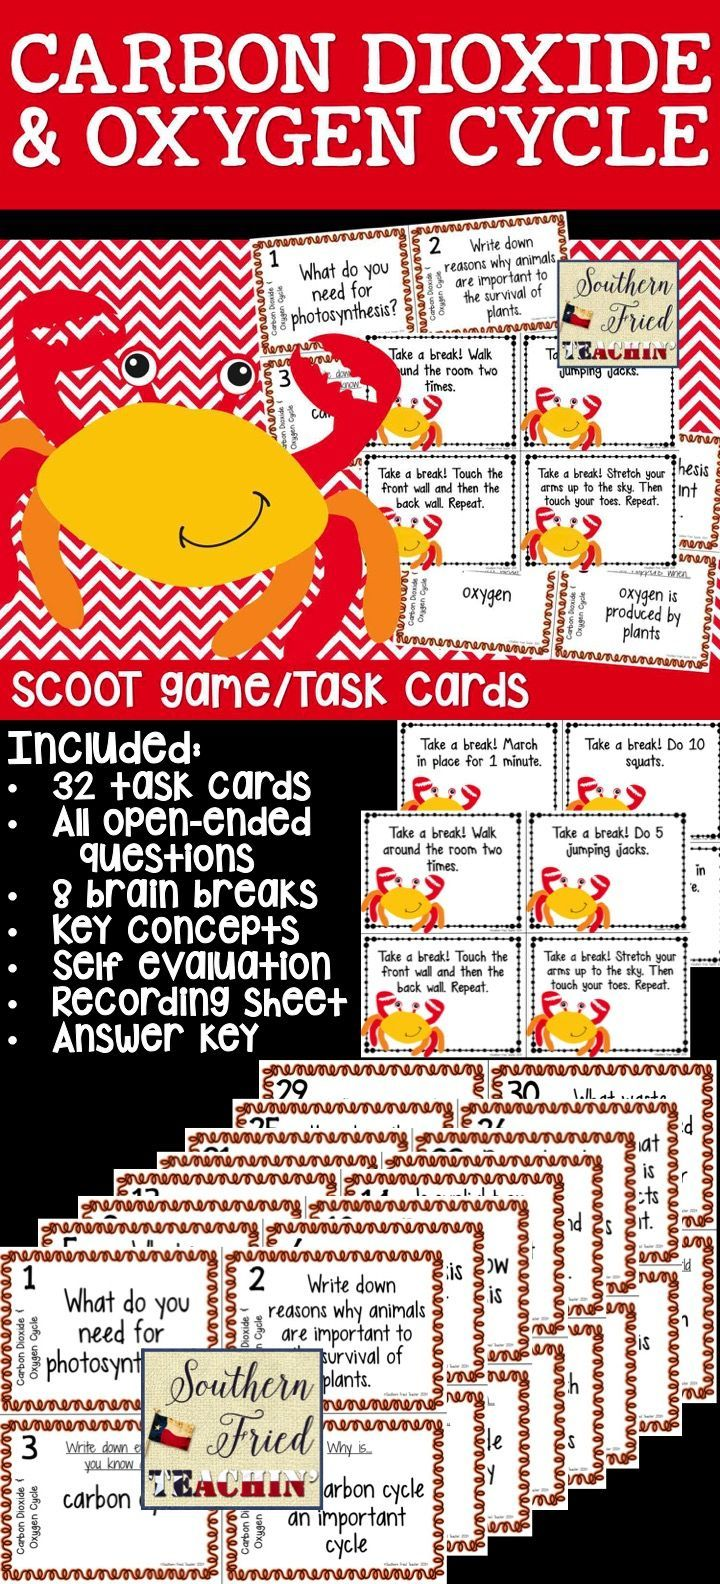 Task cards for a fun scoot game or science center on the carbon dioxide and oxygen cycle - all questions require critical thinking - also includes 8 brain break cards